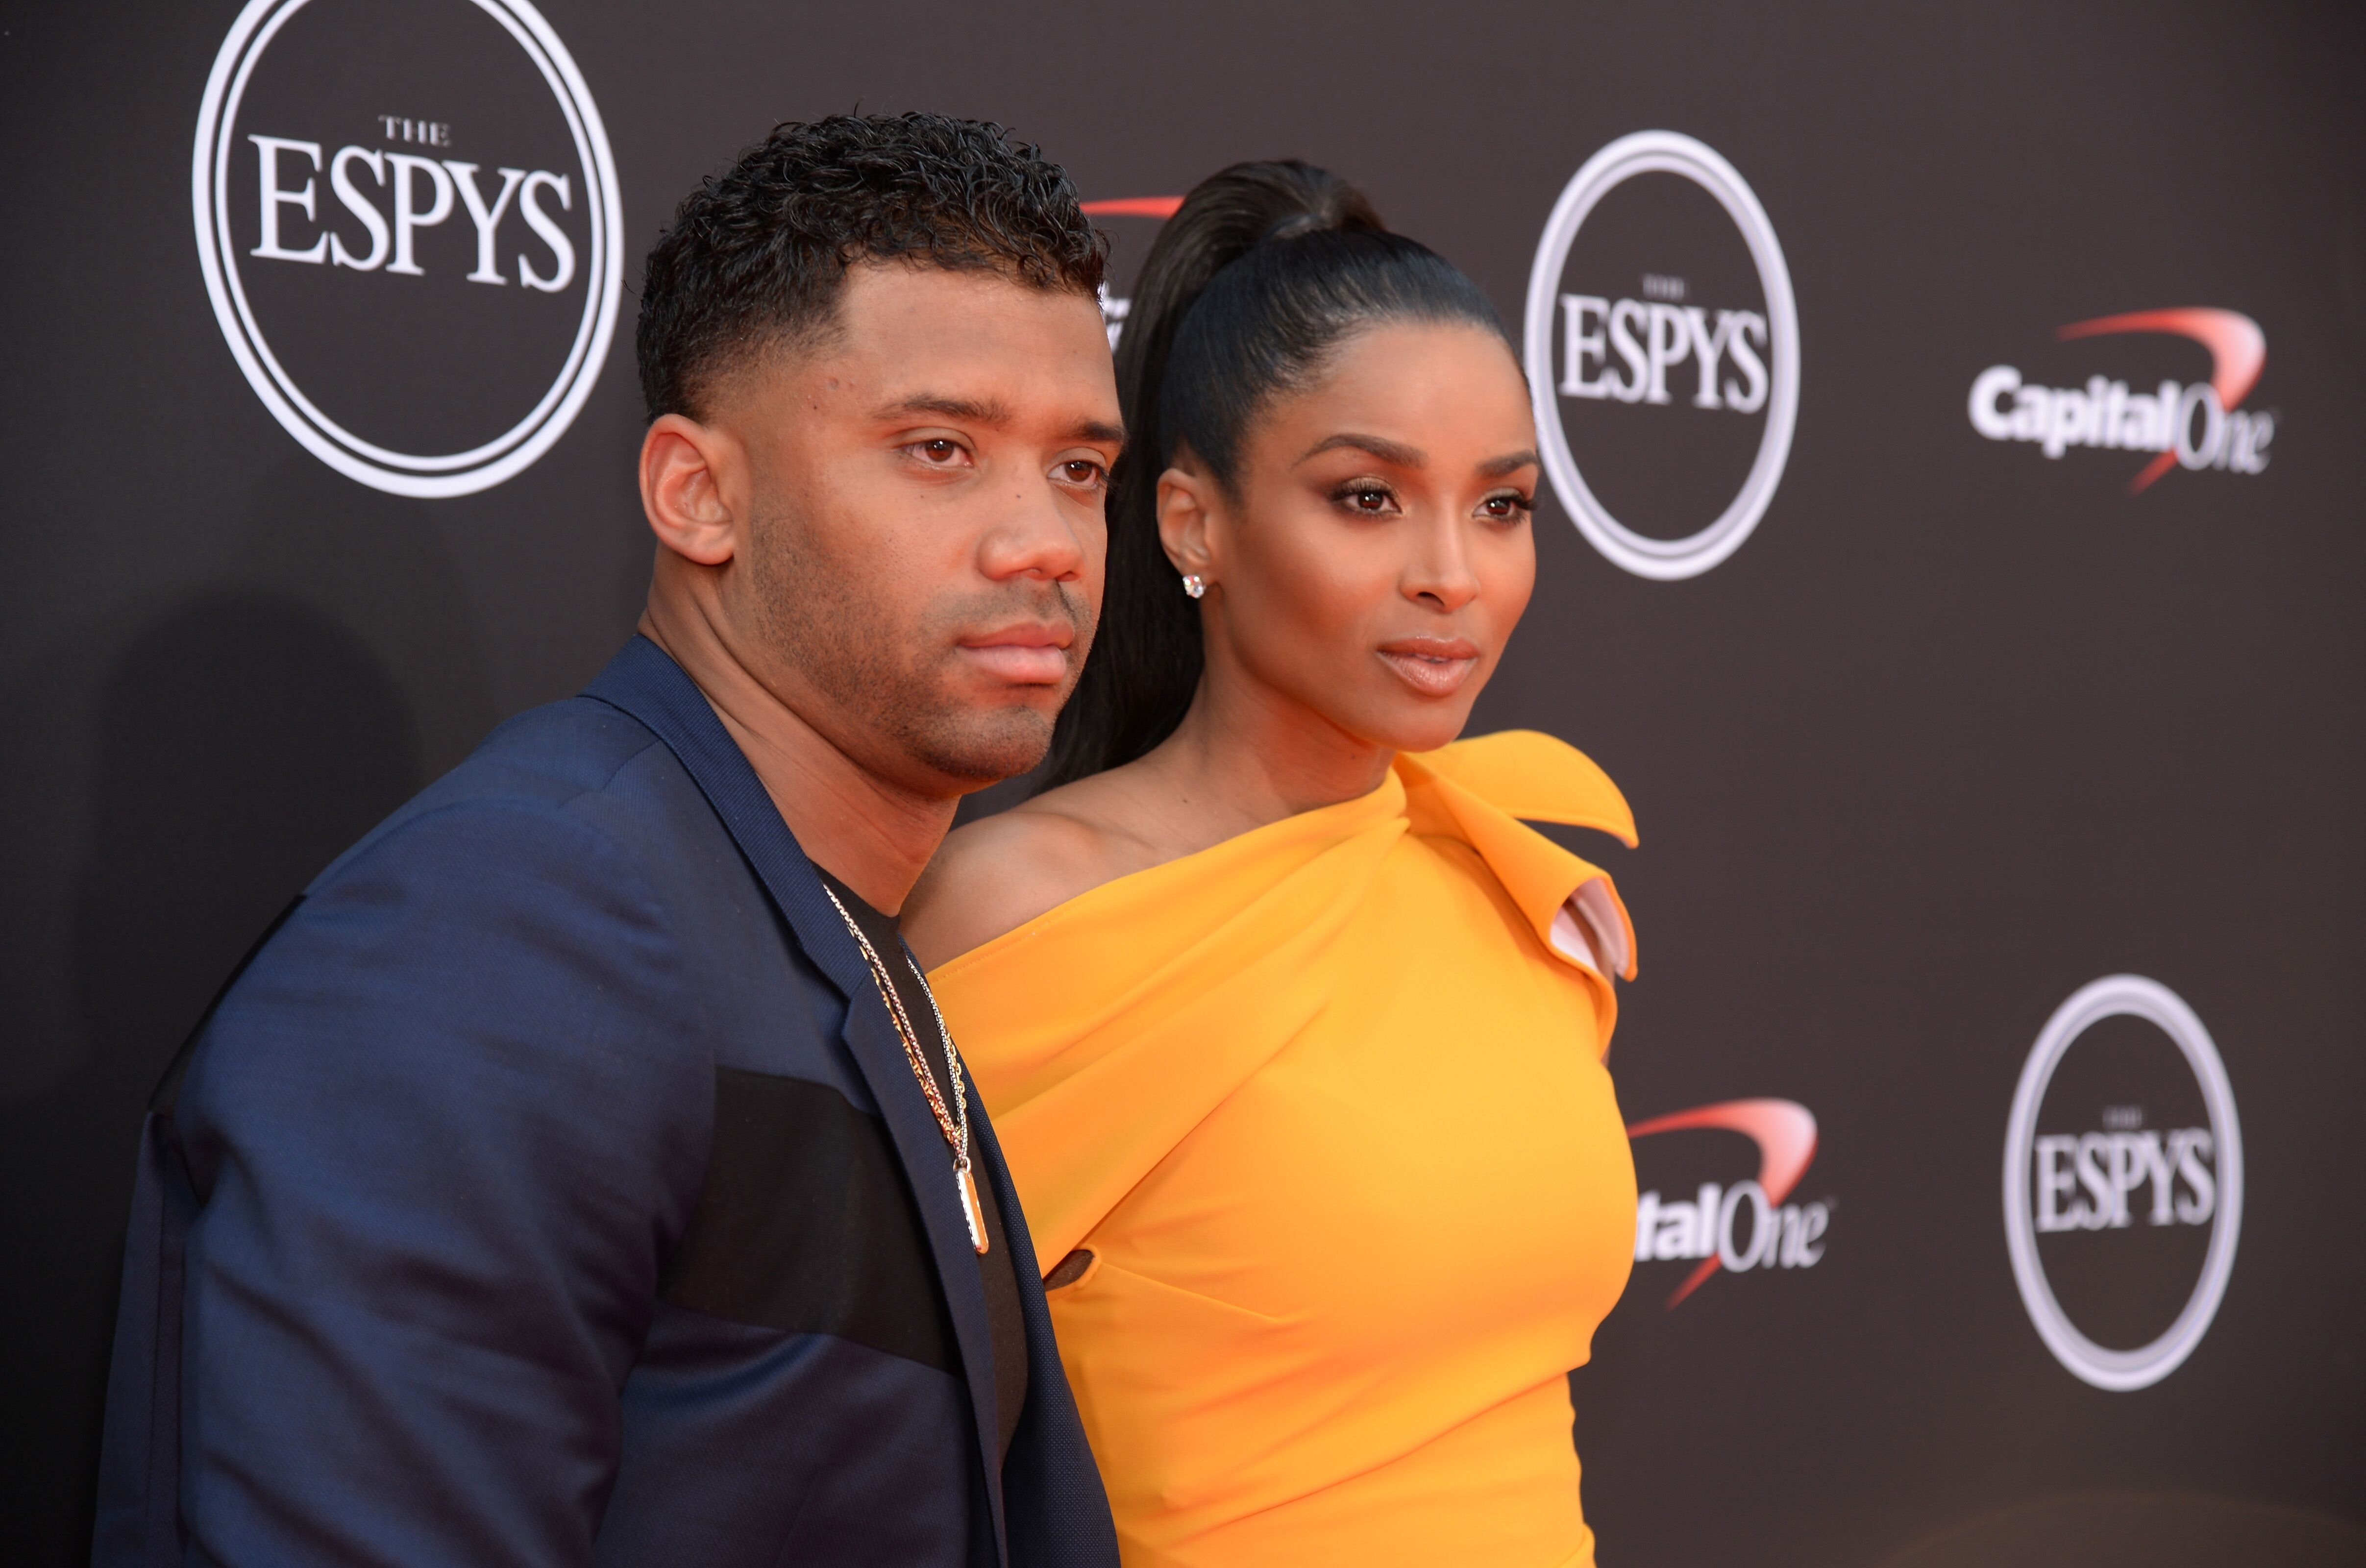 Singer Ciara and husband football player Russell Wilson attend the 2018 ESPY Awards Red Carpet Show Live! Celebrates With Moet & Chandon at Microsoft Theater on July 18, 2018 | Photo: Getty Images